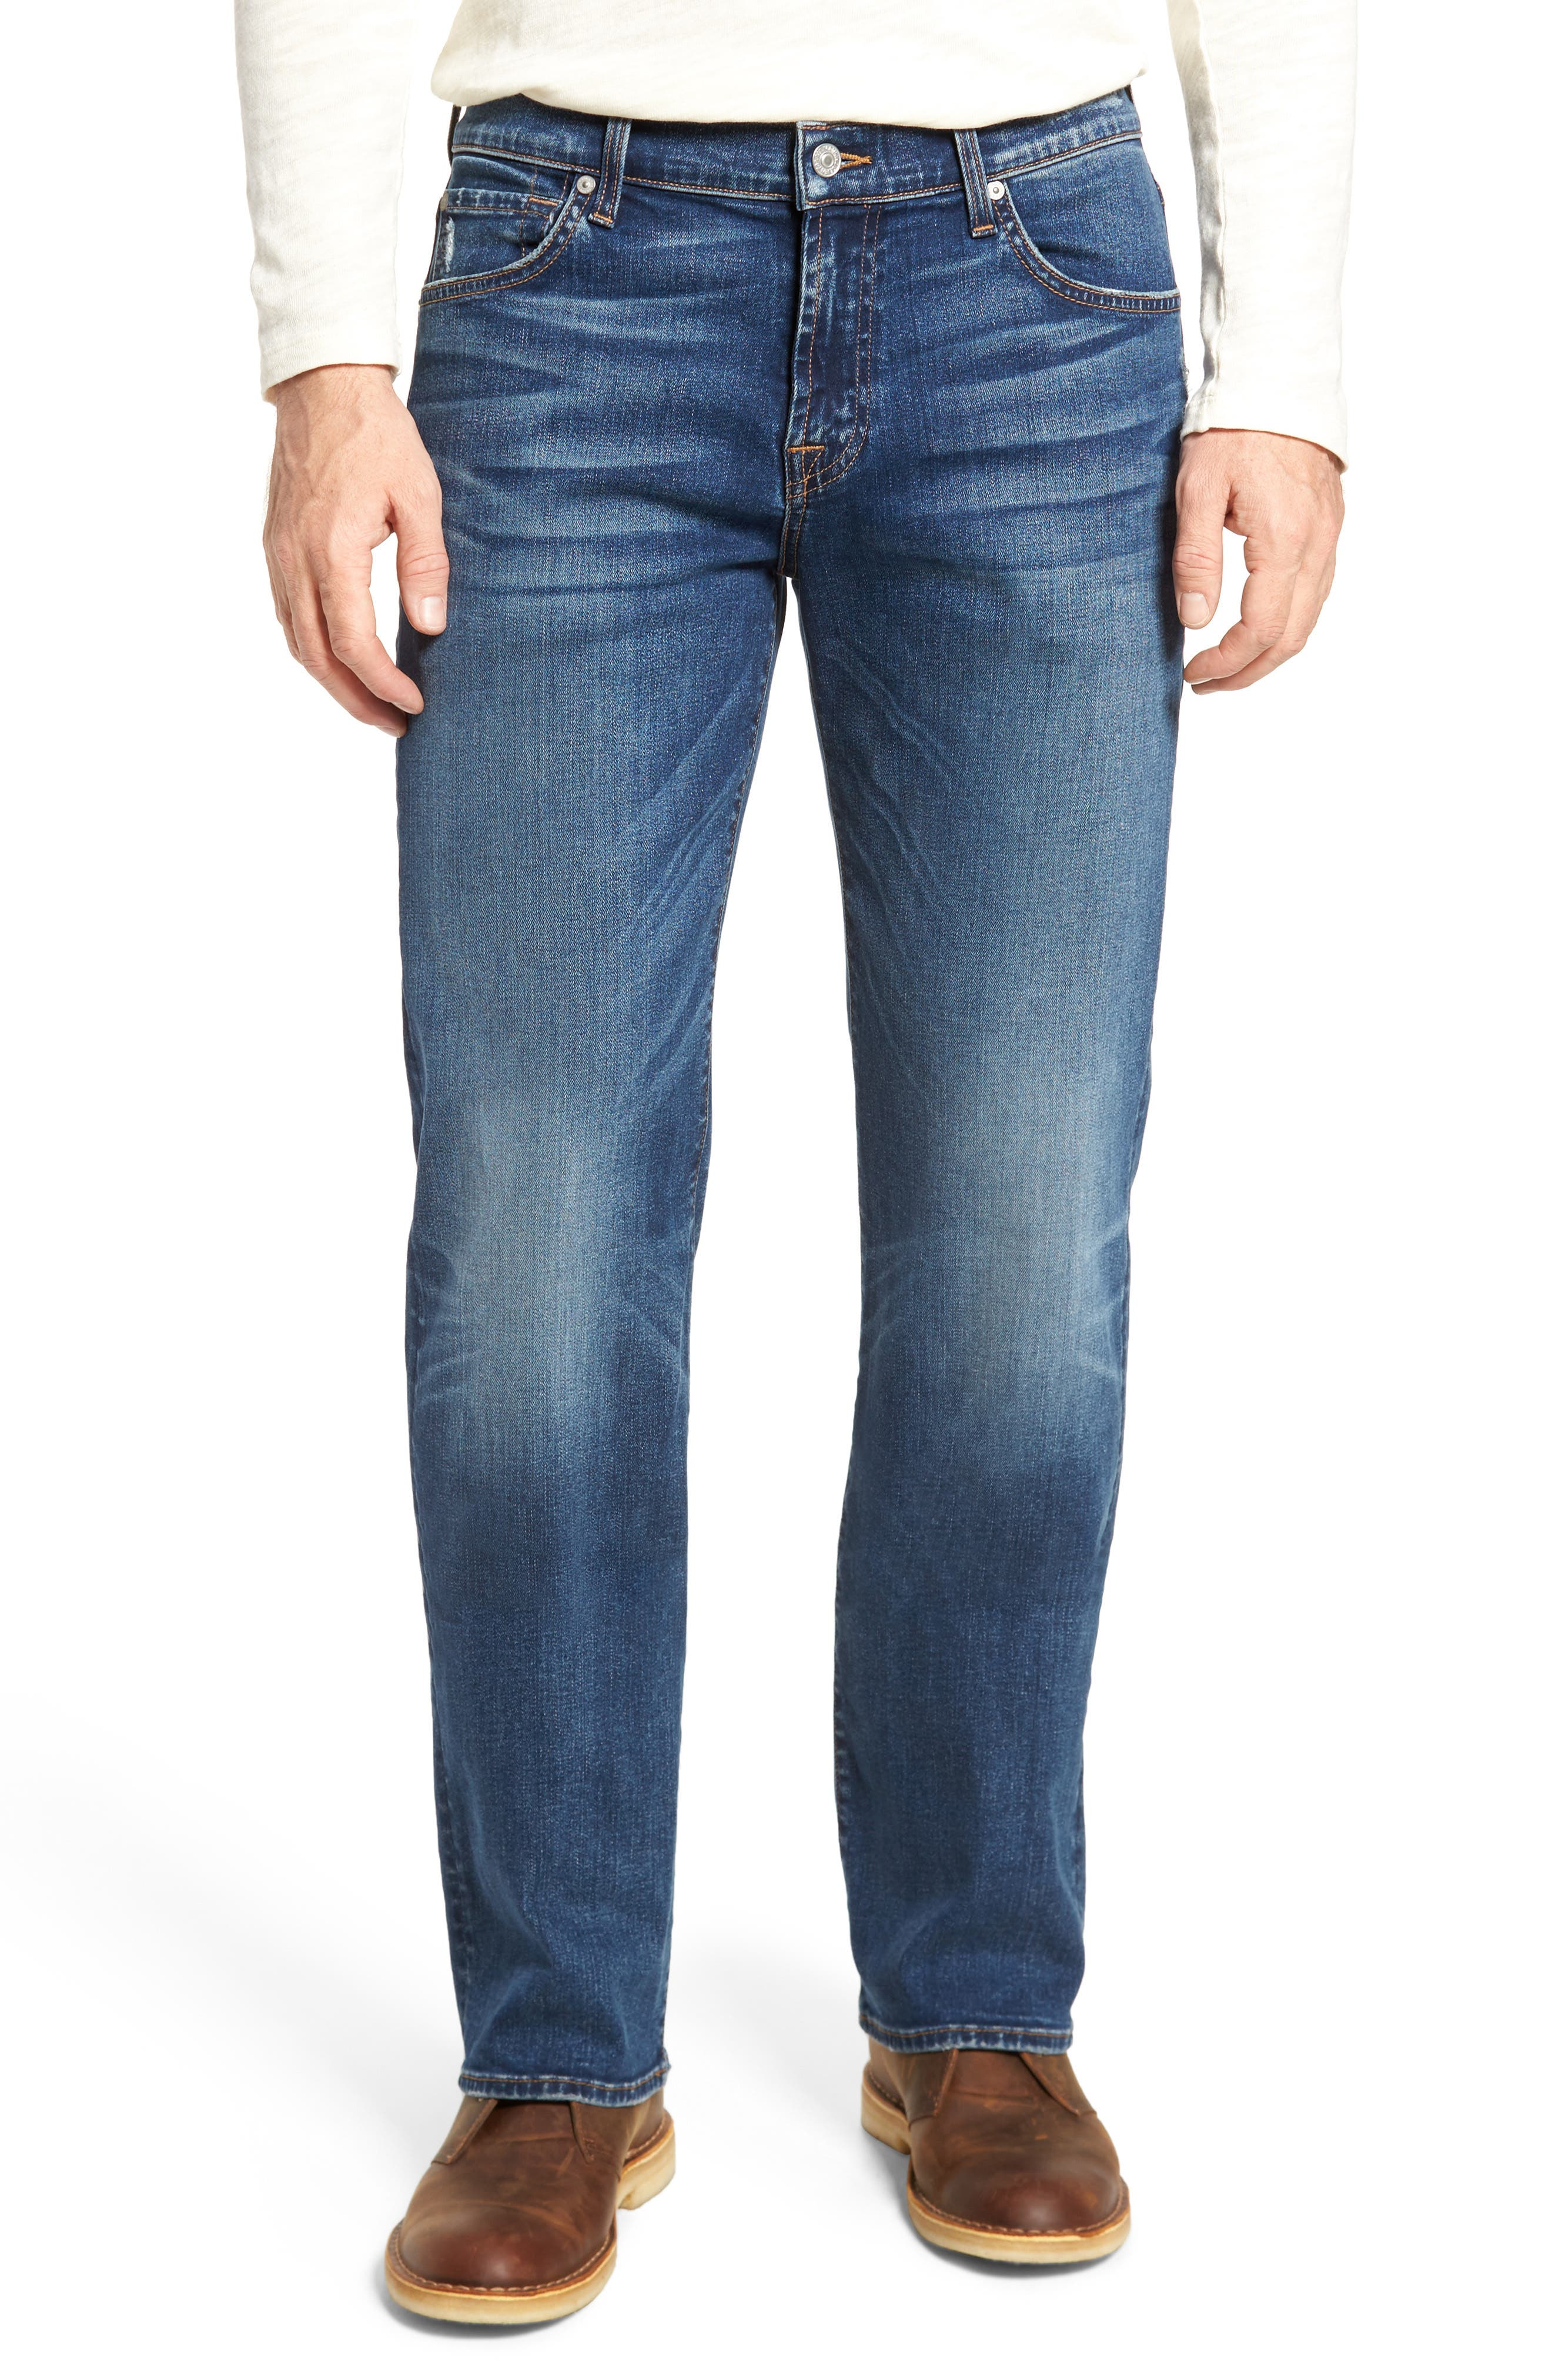 Luxe Performance - Austyn Relaxed Fit Jeans,                         Main,                         color, Union